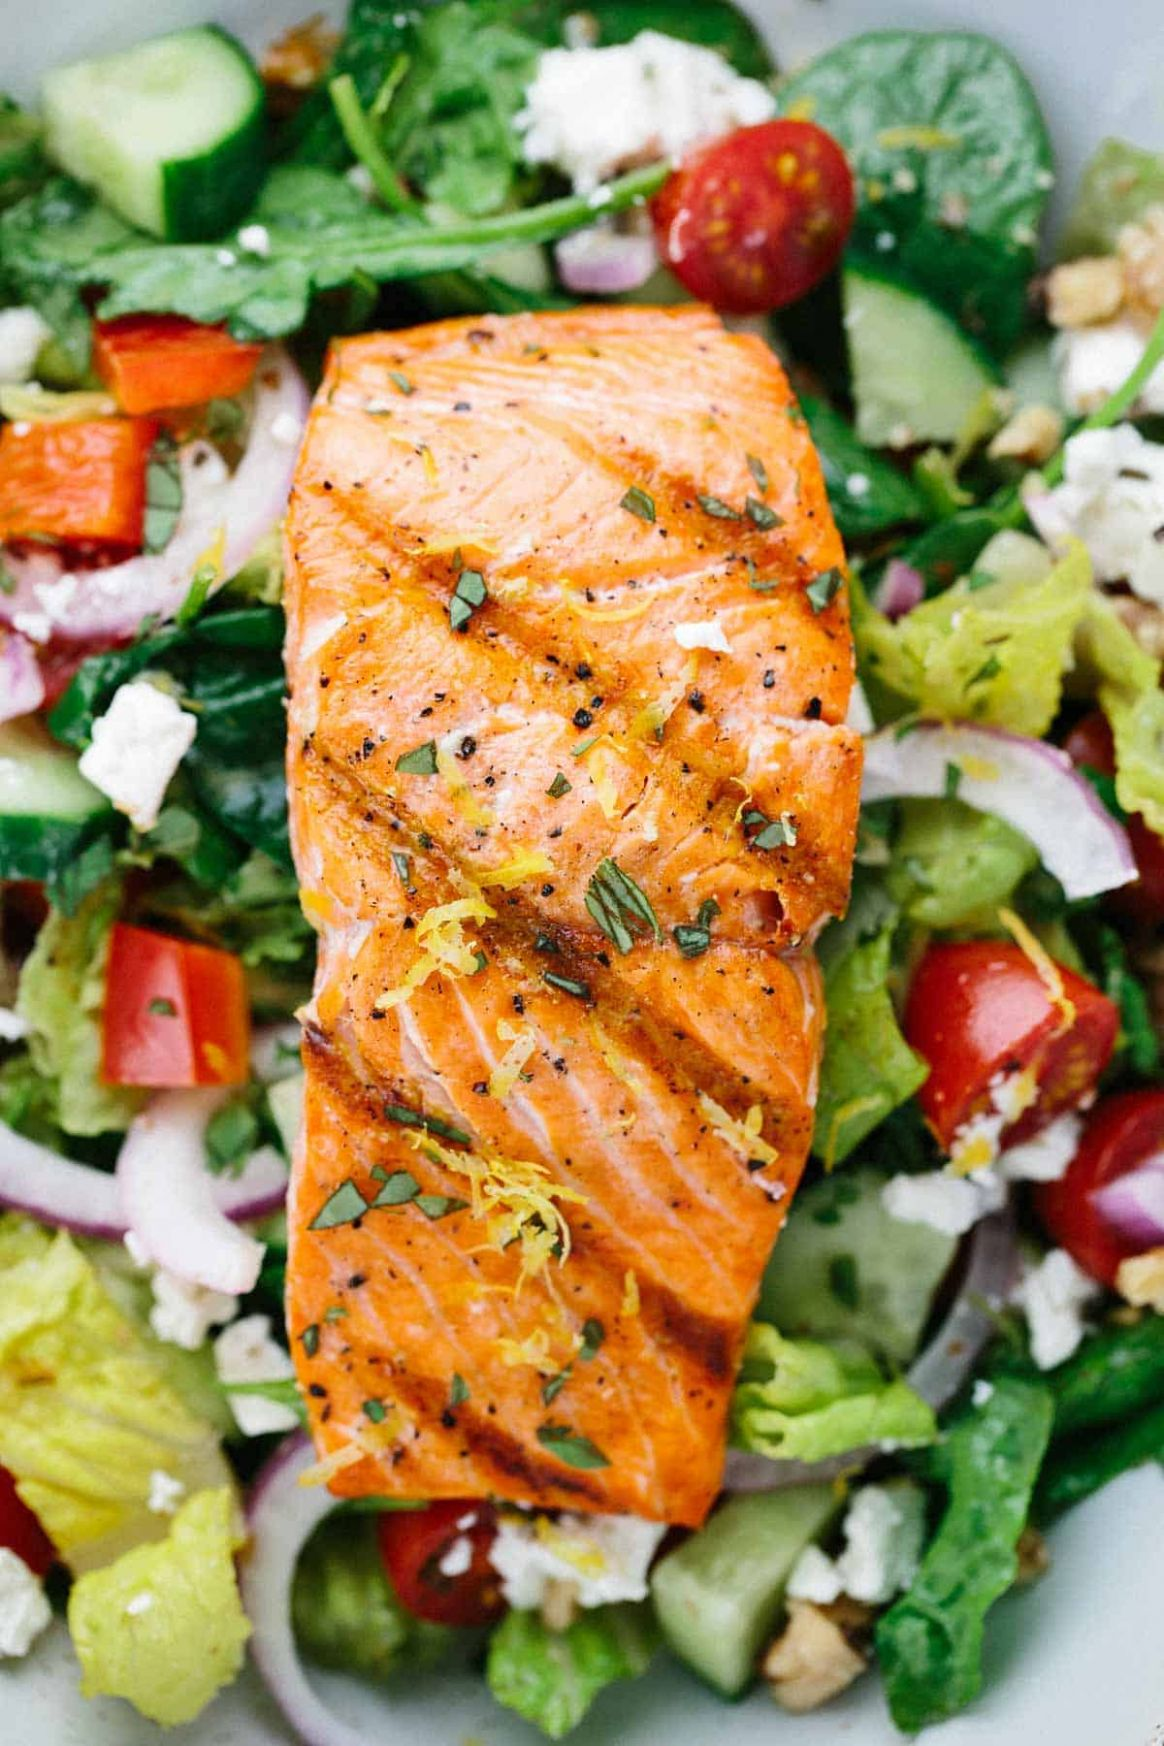 Grilled Salmon Greek Salad with Lemon Basil Dressing - Jessica Gavin - Salad Recipes To Go With Fish